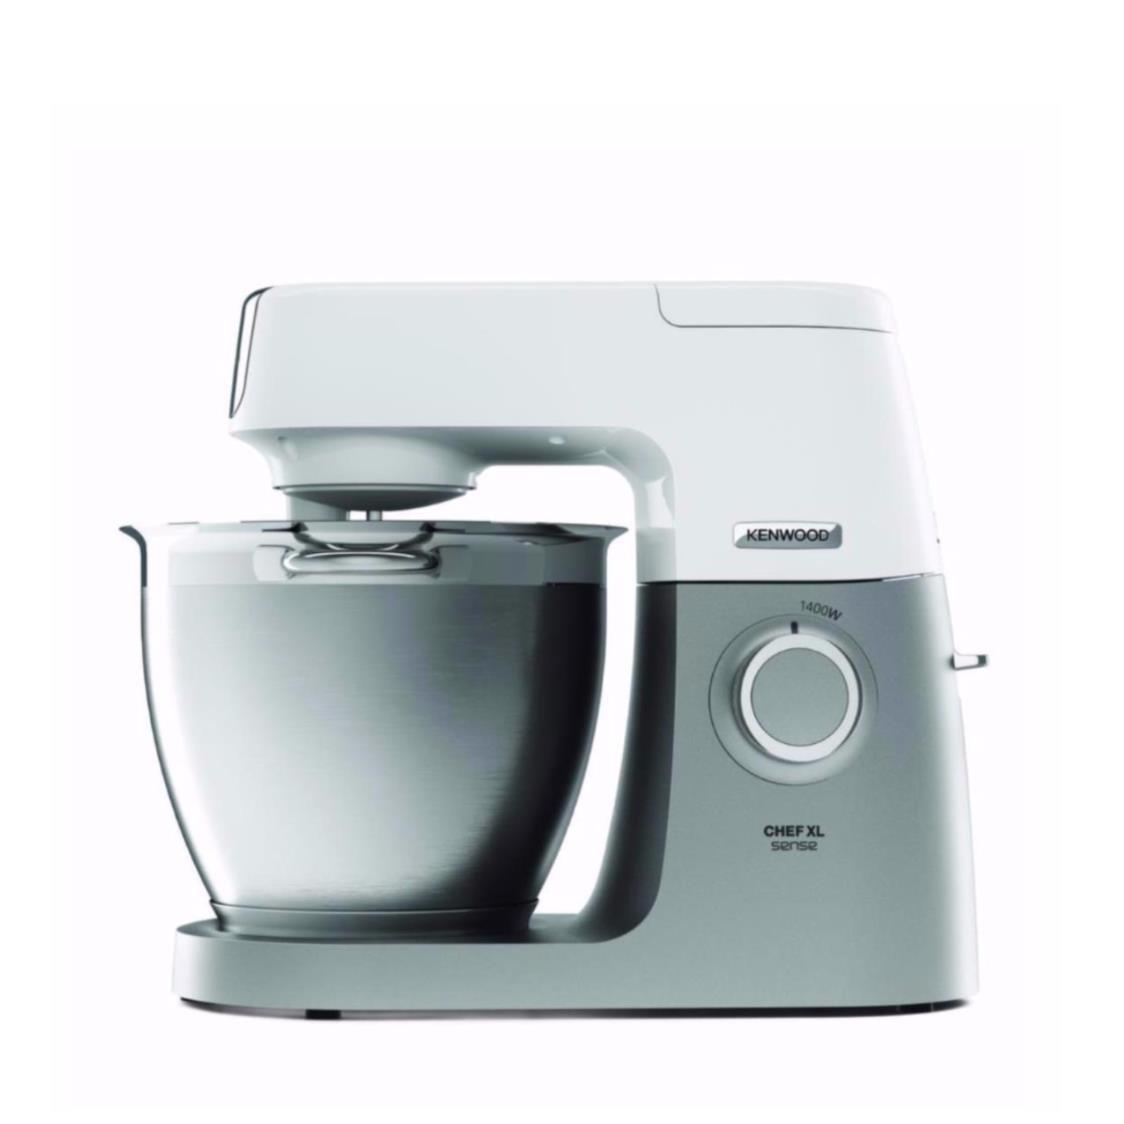 Chef Sense Xl Kitchen Machine KVL6100T 6.7L | Metro Department Store